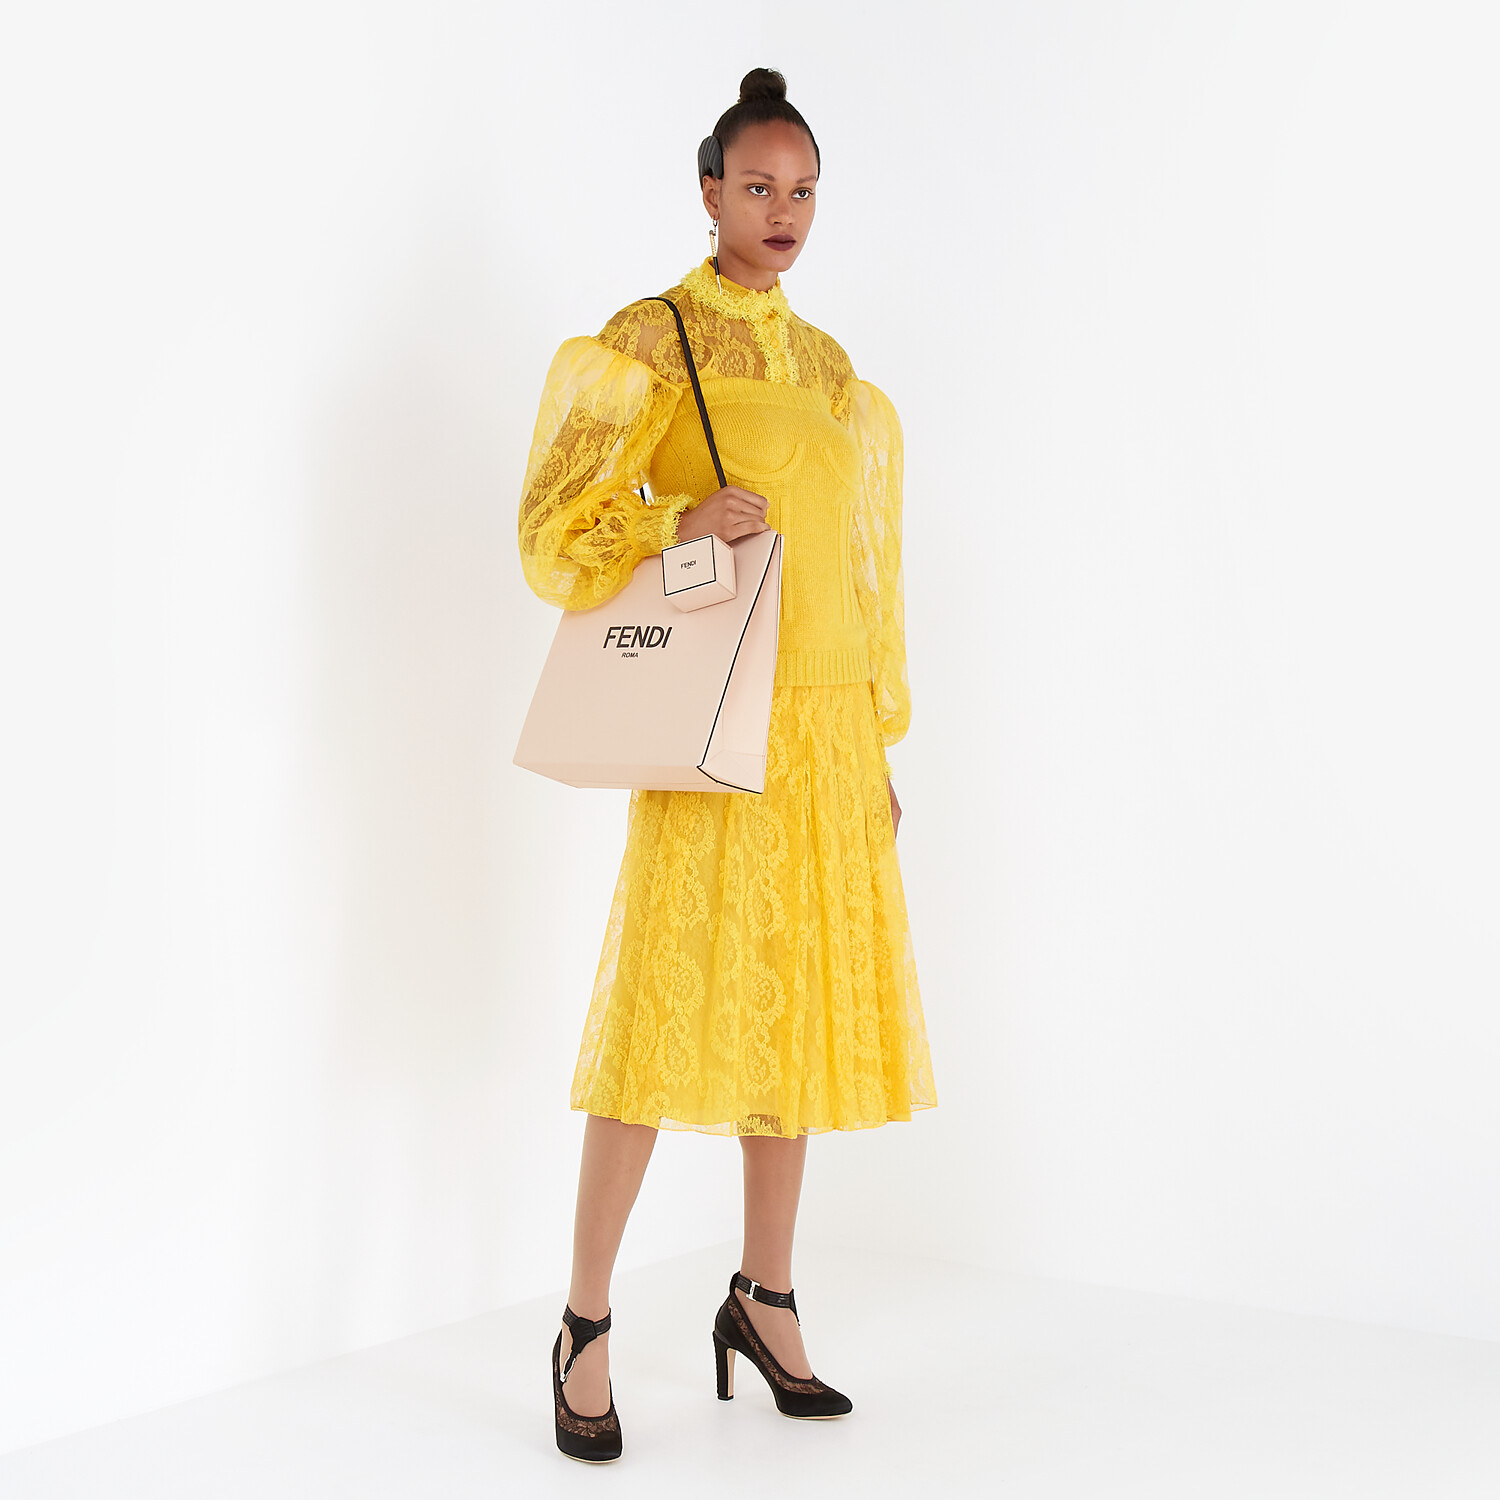 FENDI SKIRT - Yellow lace skirt - view 4 detail